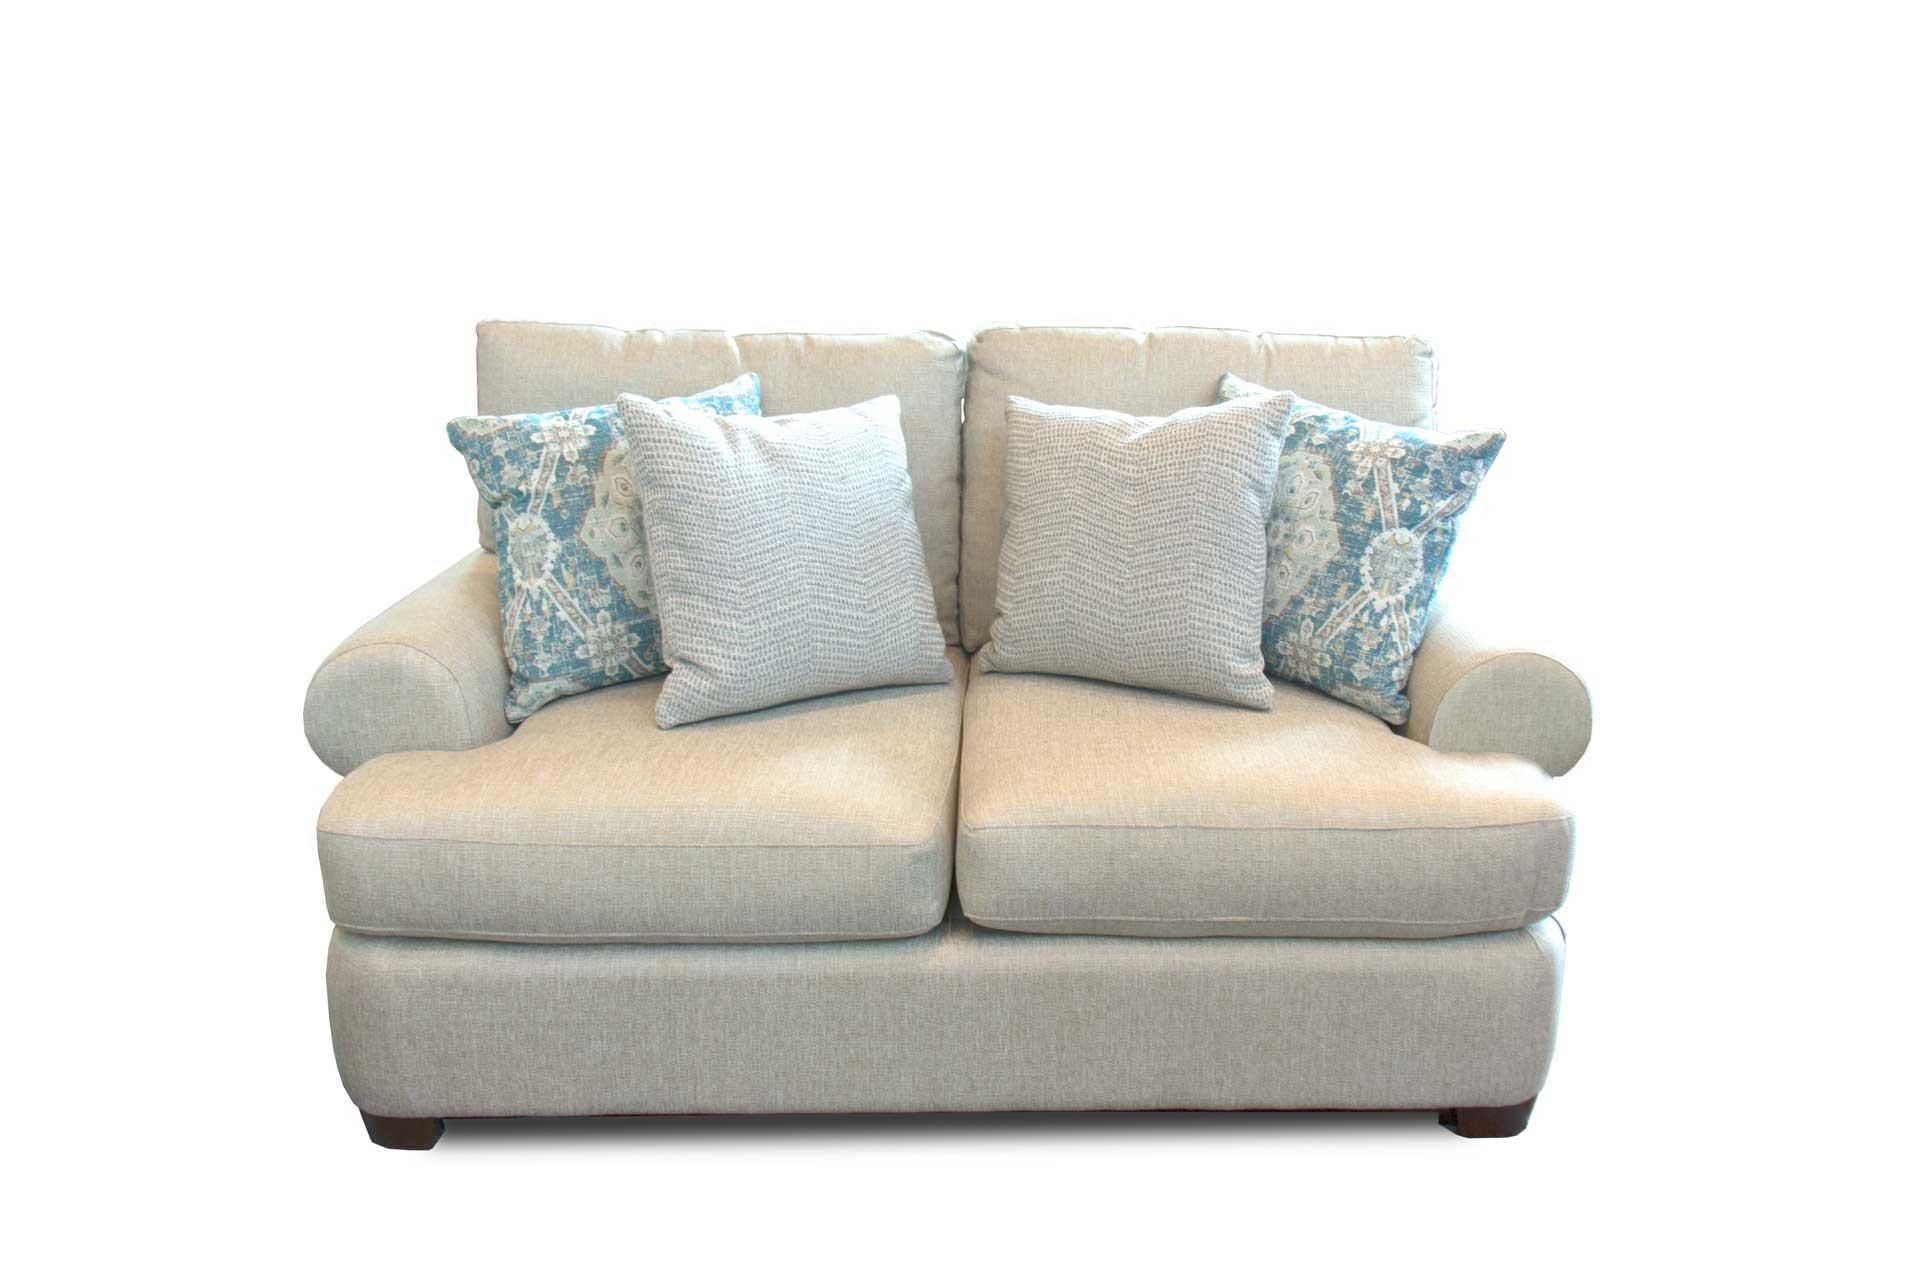 Bassett Monterey Loveseat Great American Home Store Love Seats